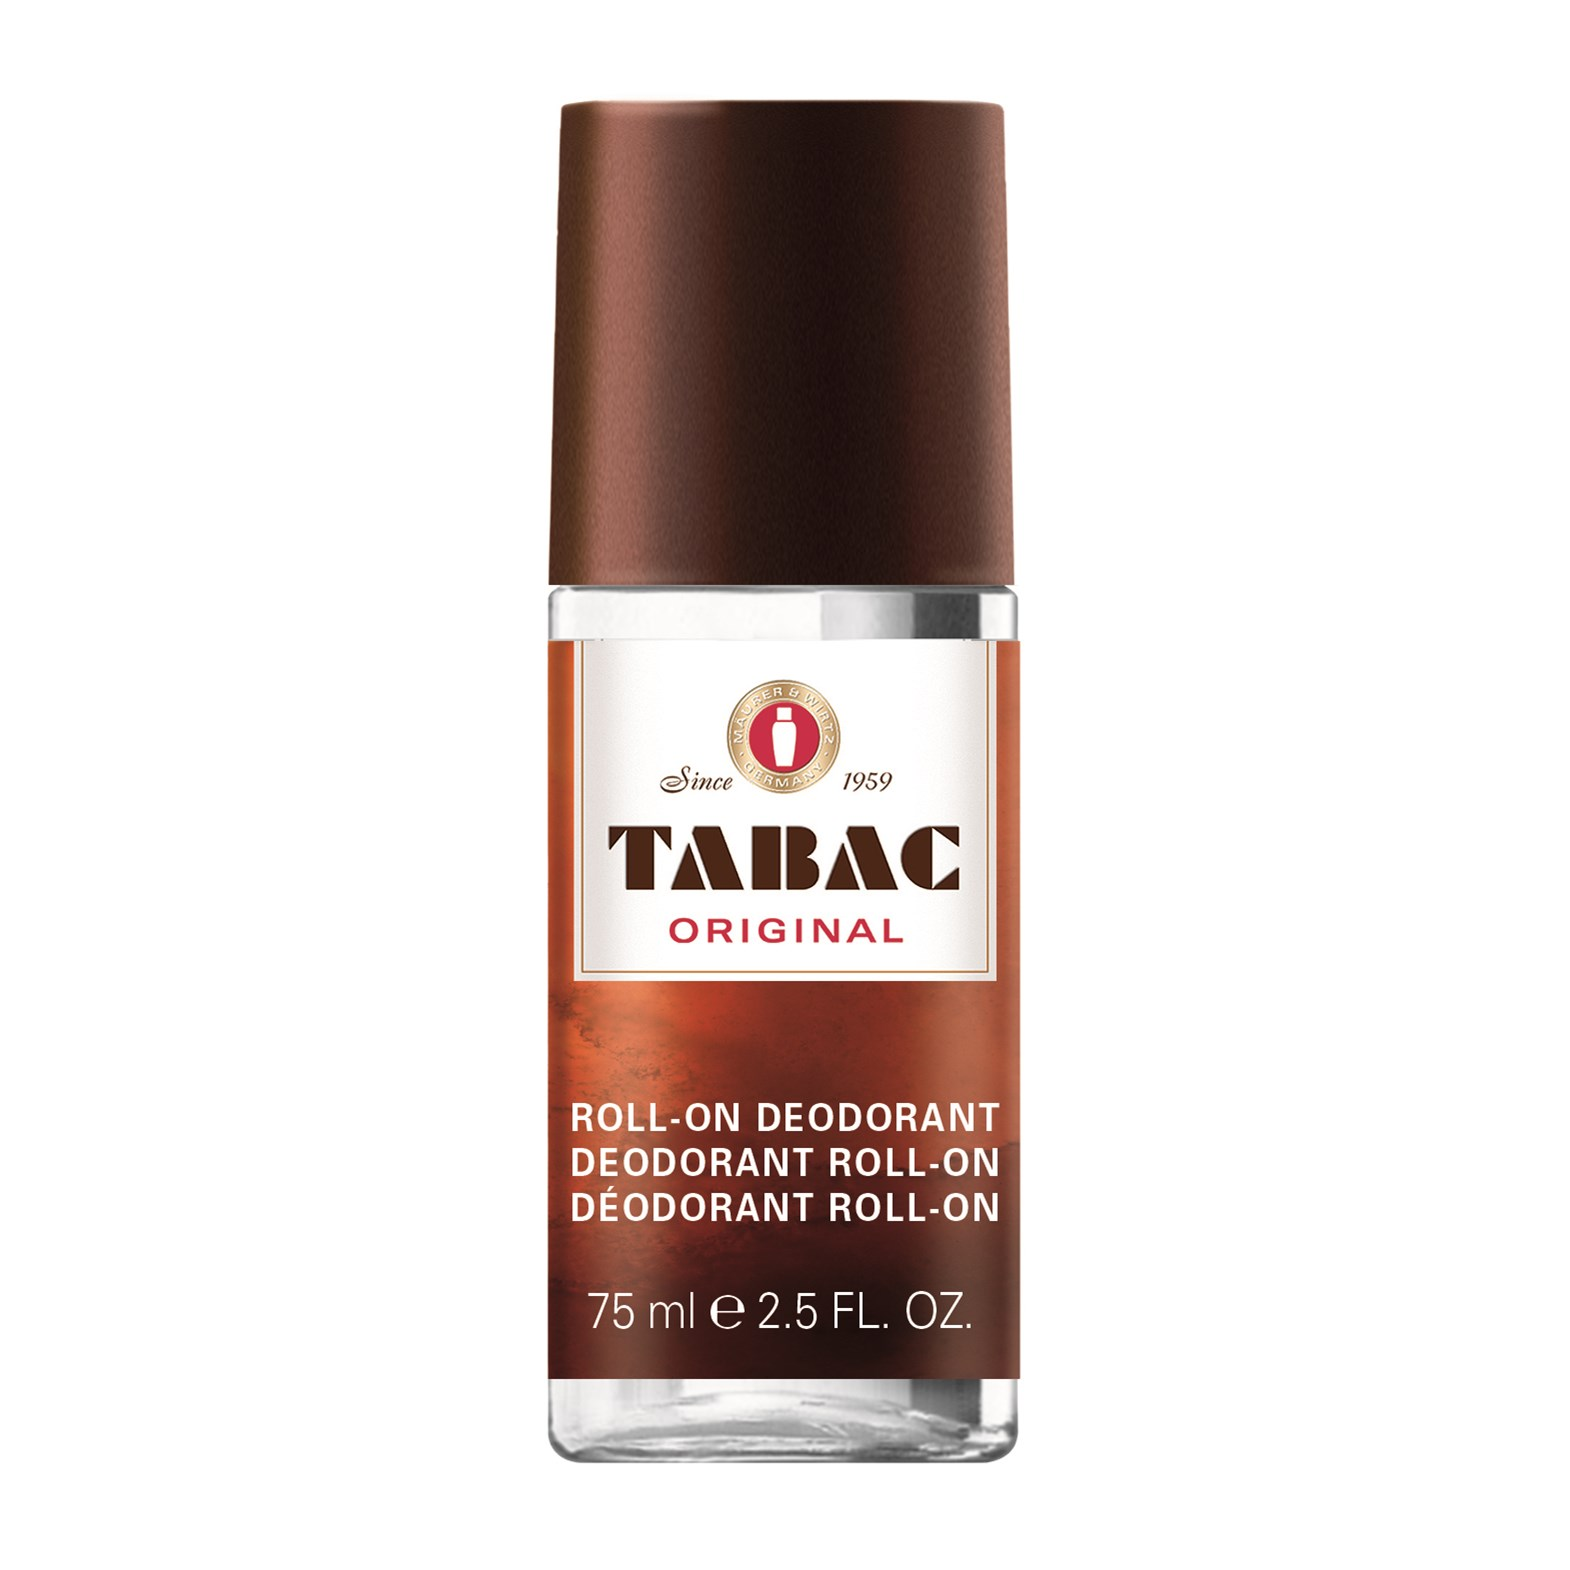 Tabac Original Deo Roll-on 75 ml